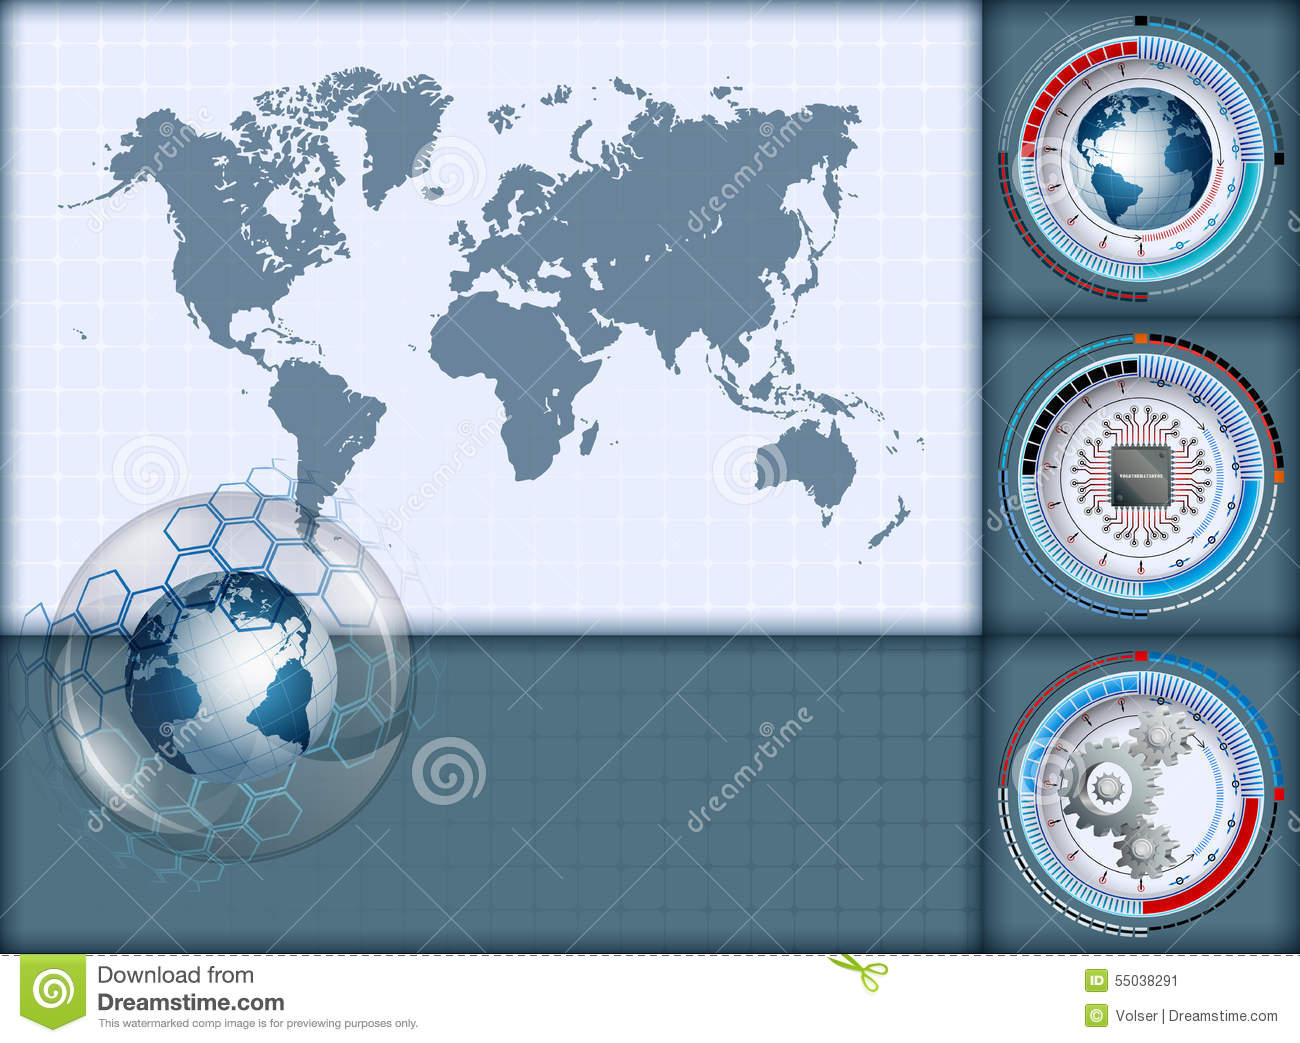 World Map Download For Computer. Design layout template  with World Map and earth globe inside sphere of glass Layout Template With And Earth Globe Inside